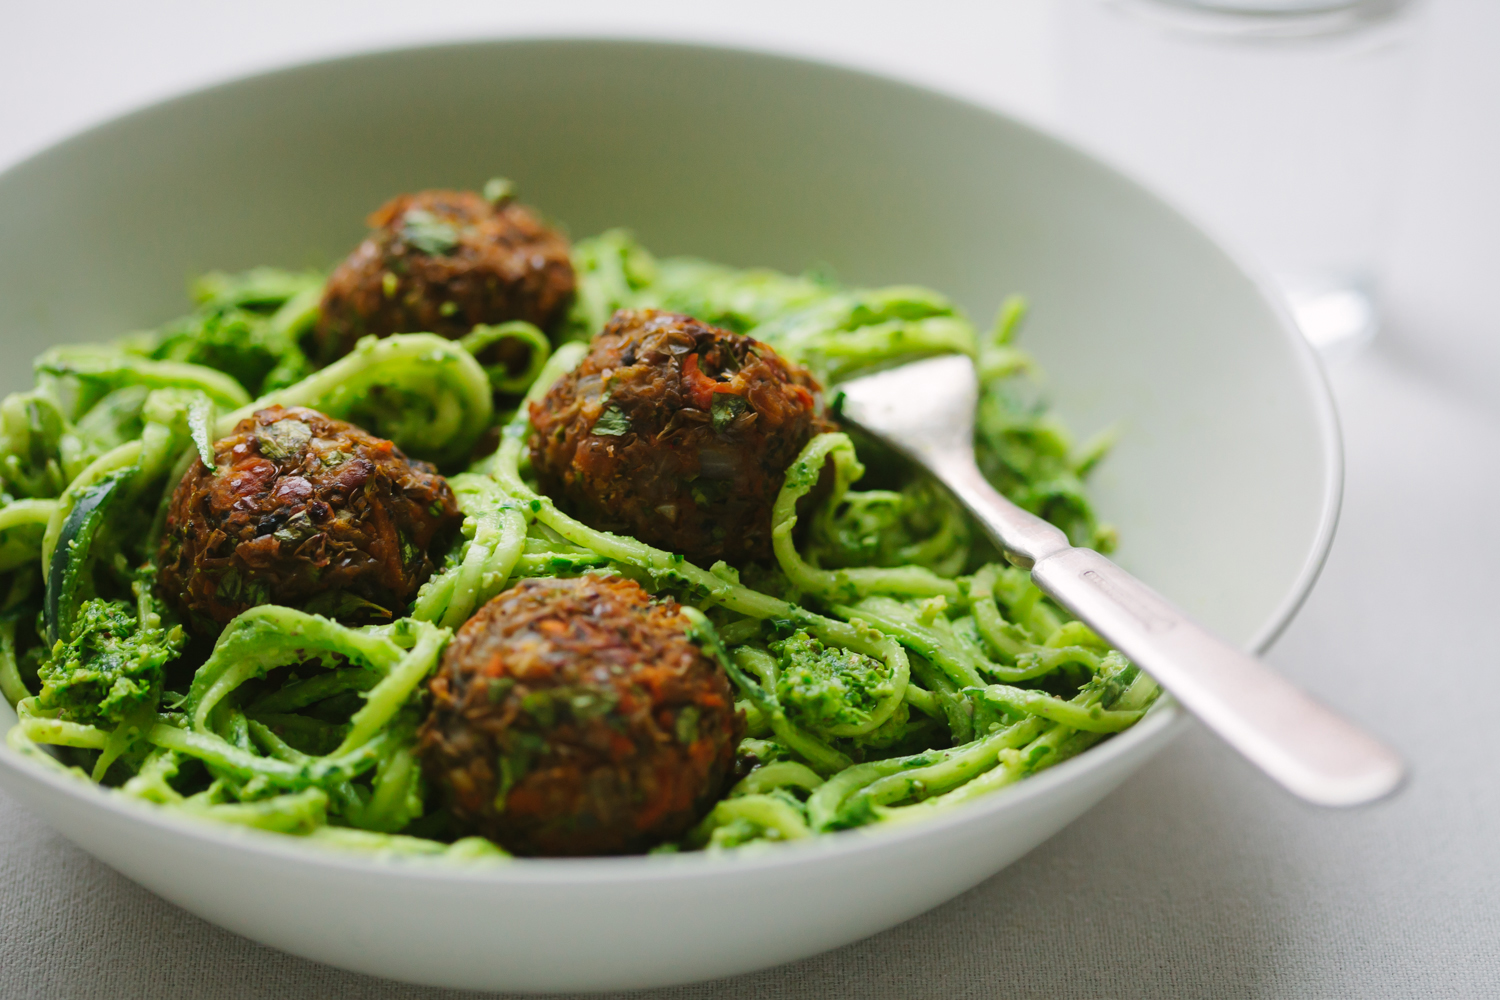 Italian Style Lentil and Mushroom (Not)Meatballs from Pantry to Plate - Golubka Kitchen